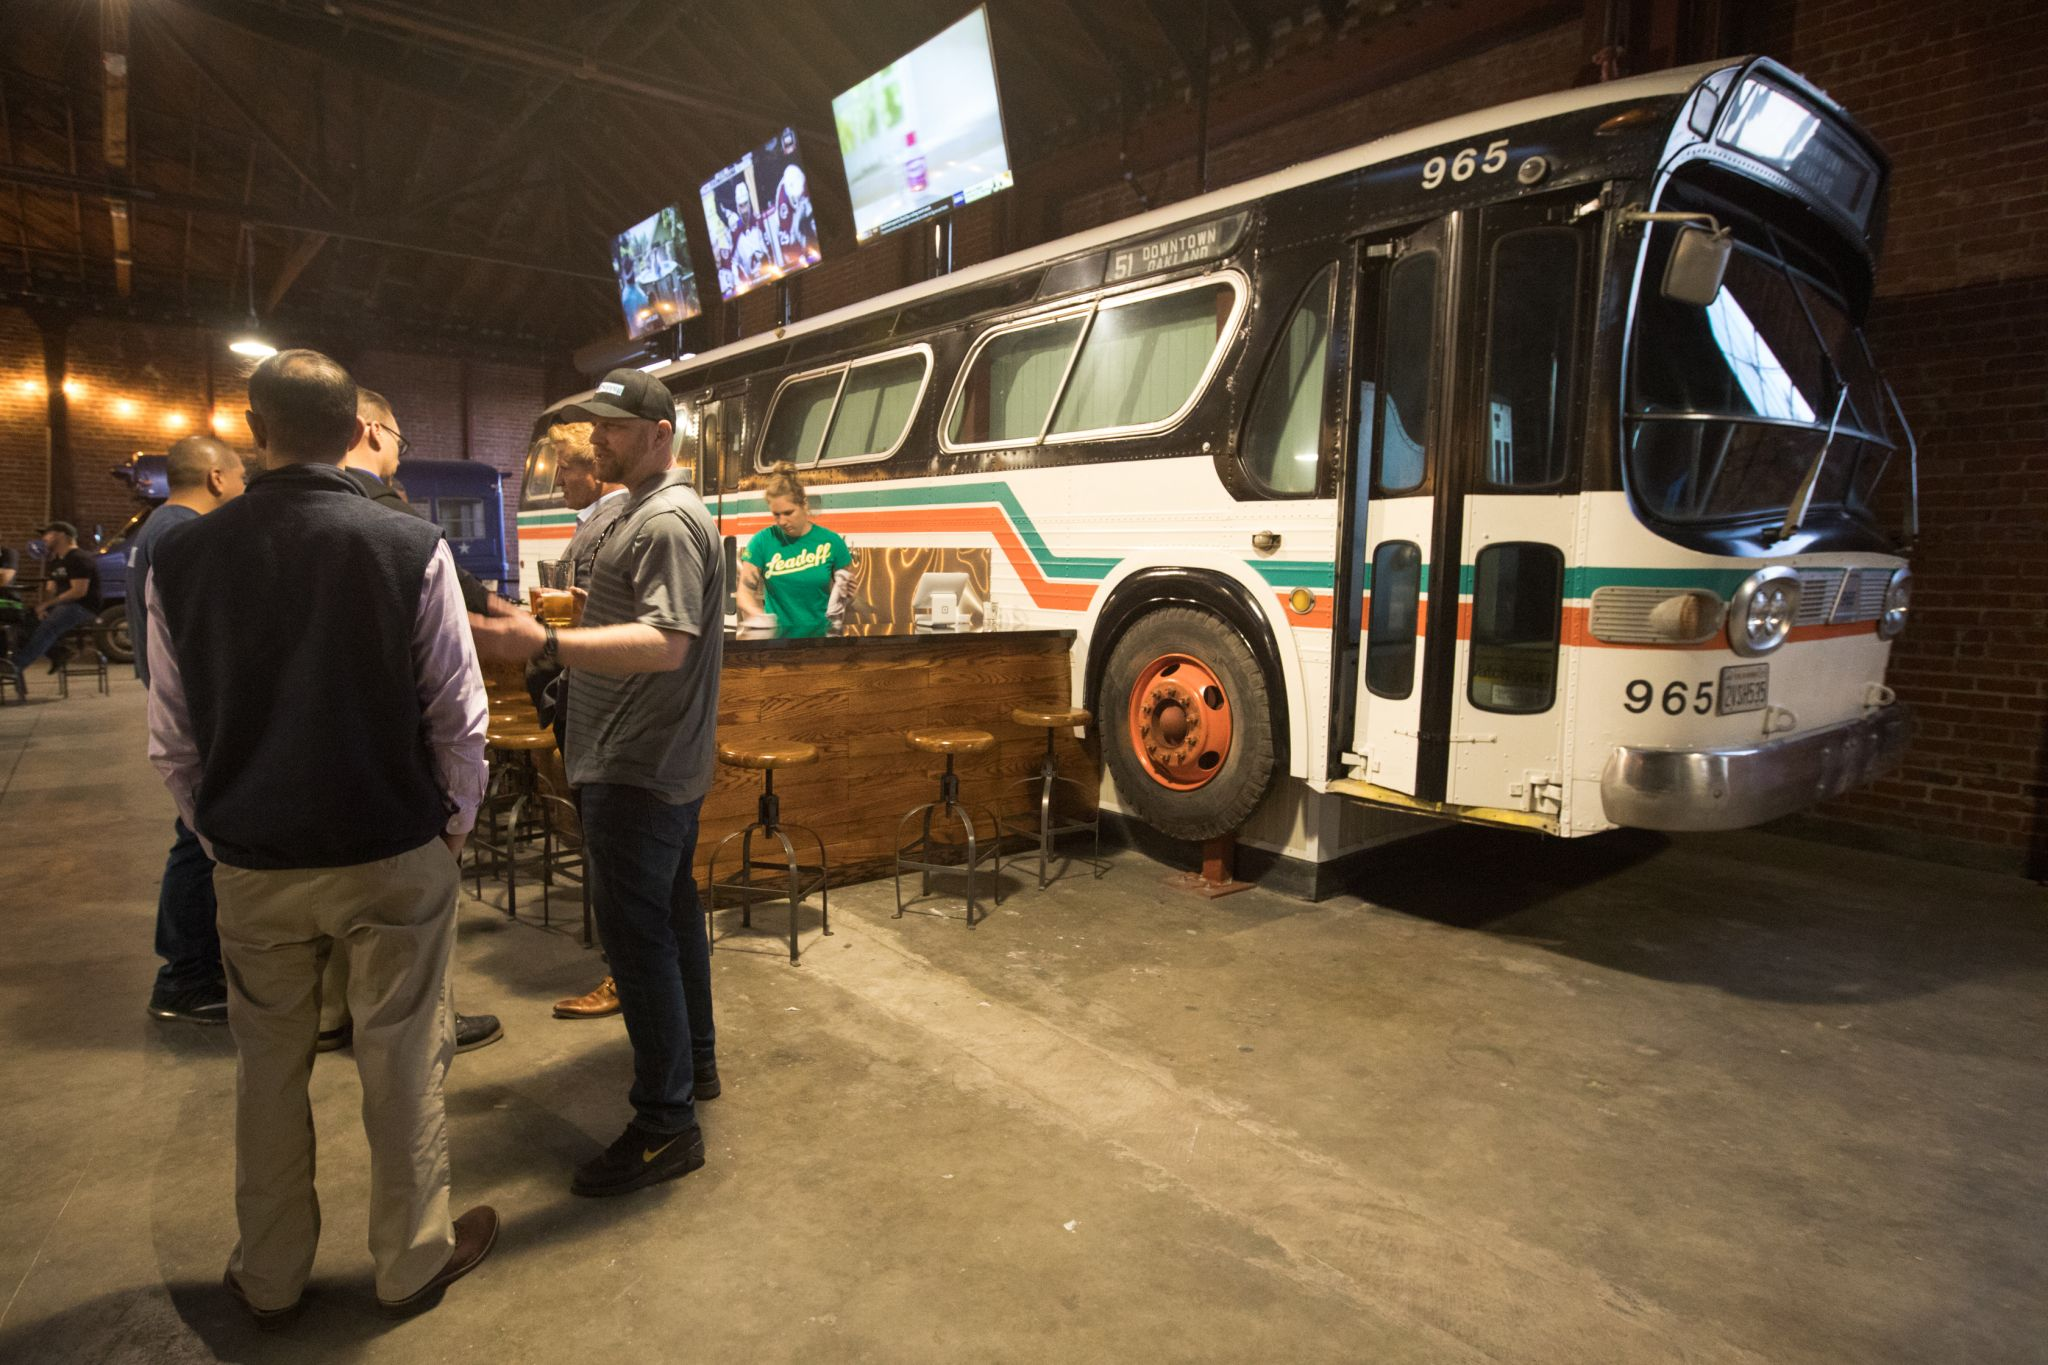 Line 51 Brewery Opens In Oakland With A Transit Inspired Surprise In Store For Customers